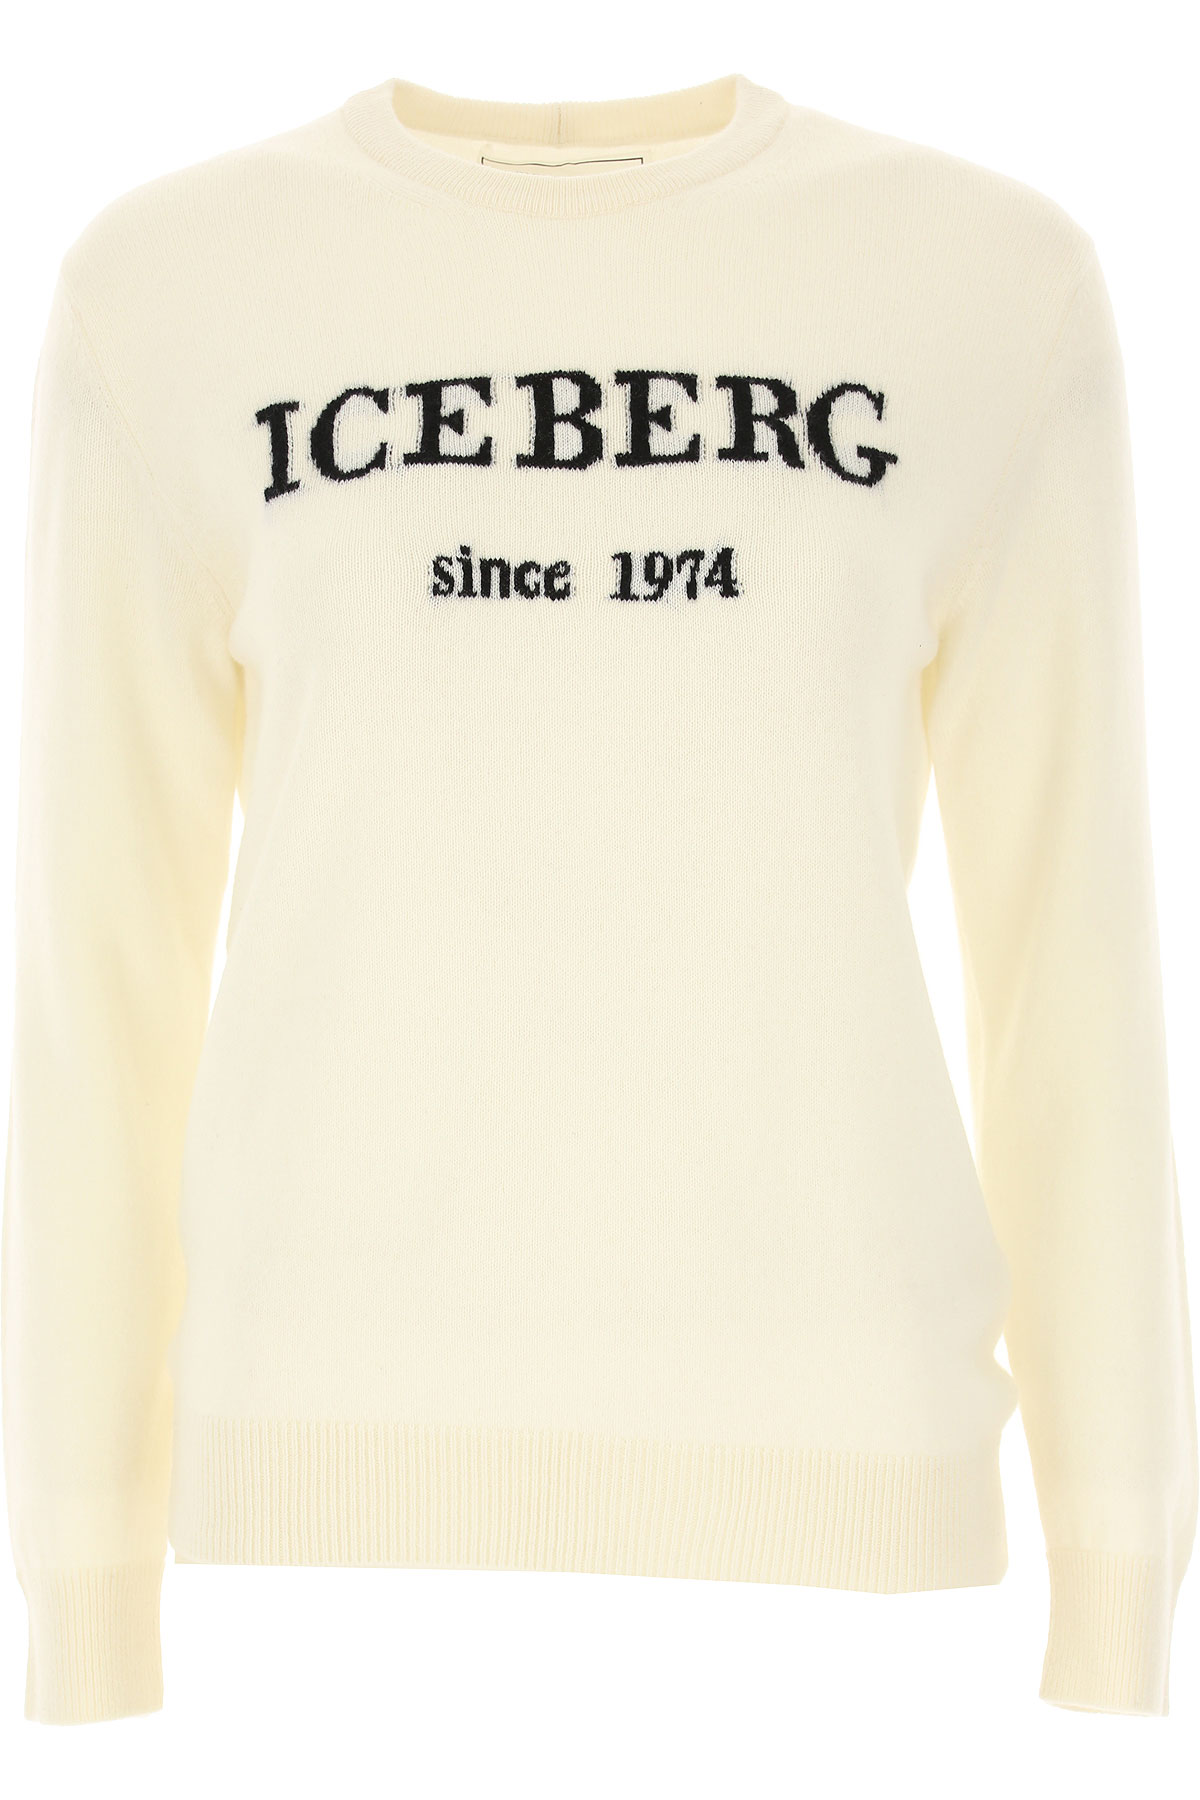 Iceberg Sweater for Women Jumper On Sale, White, Cashemere, 2019, 2 6